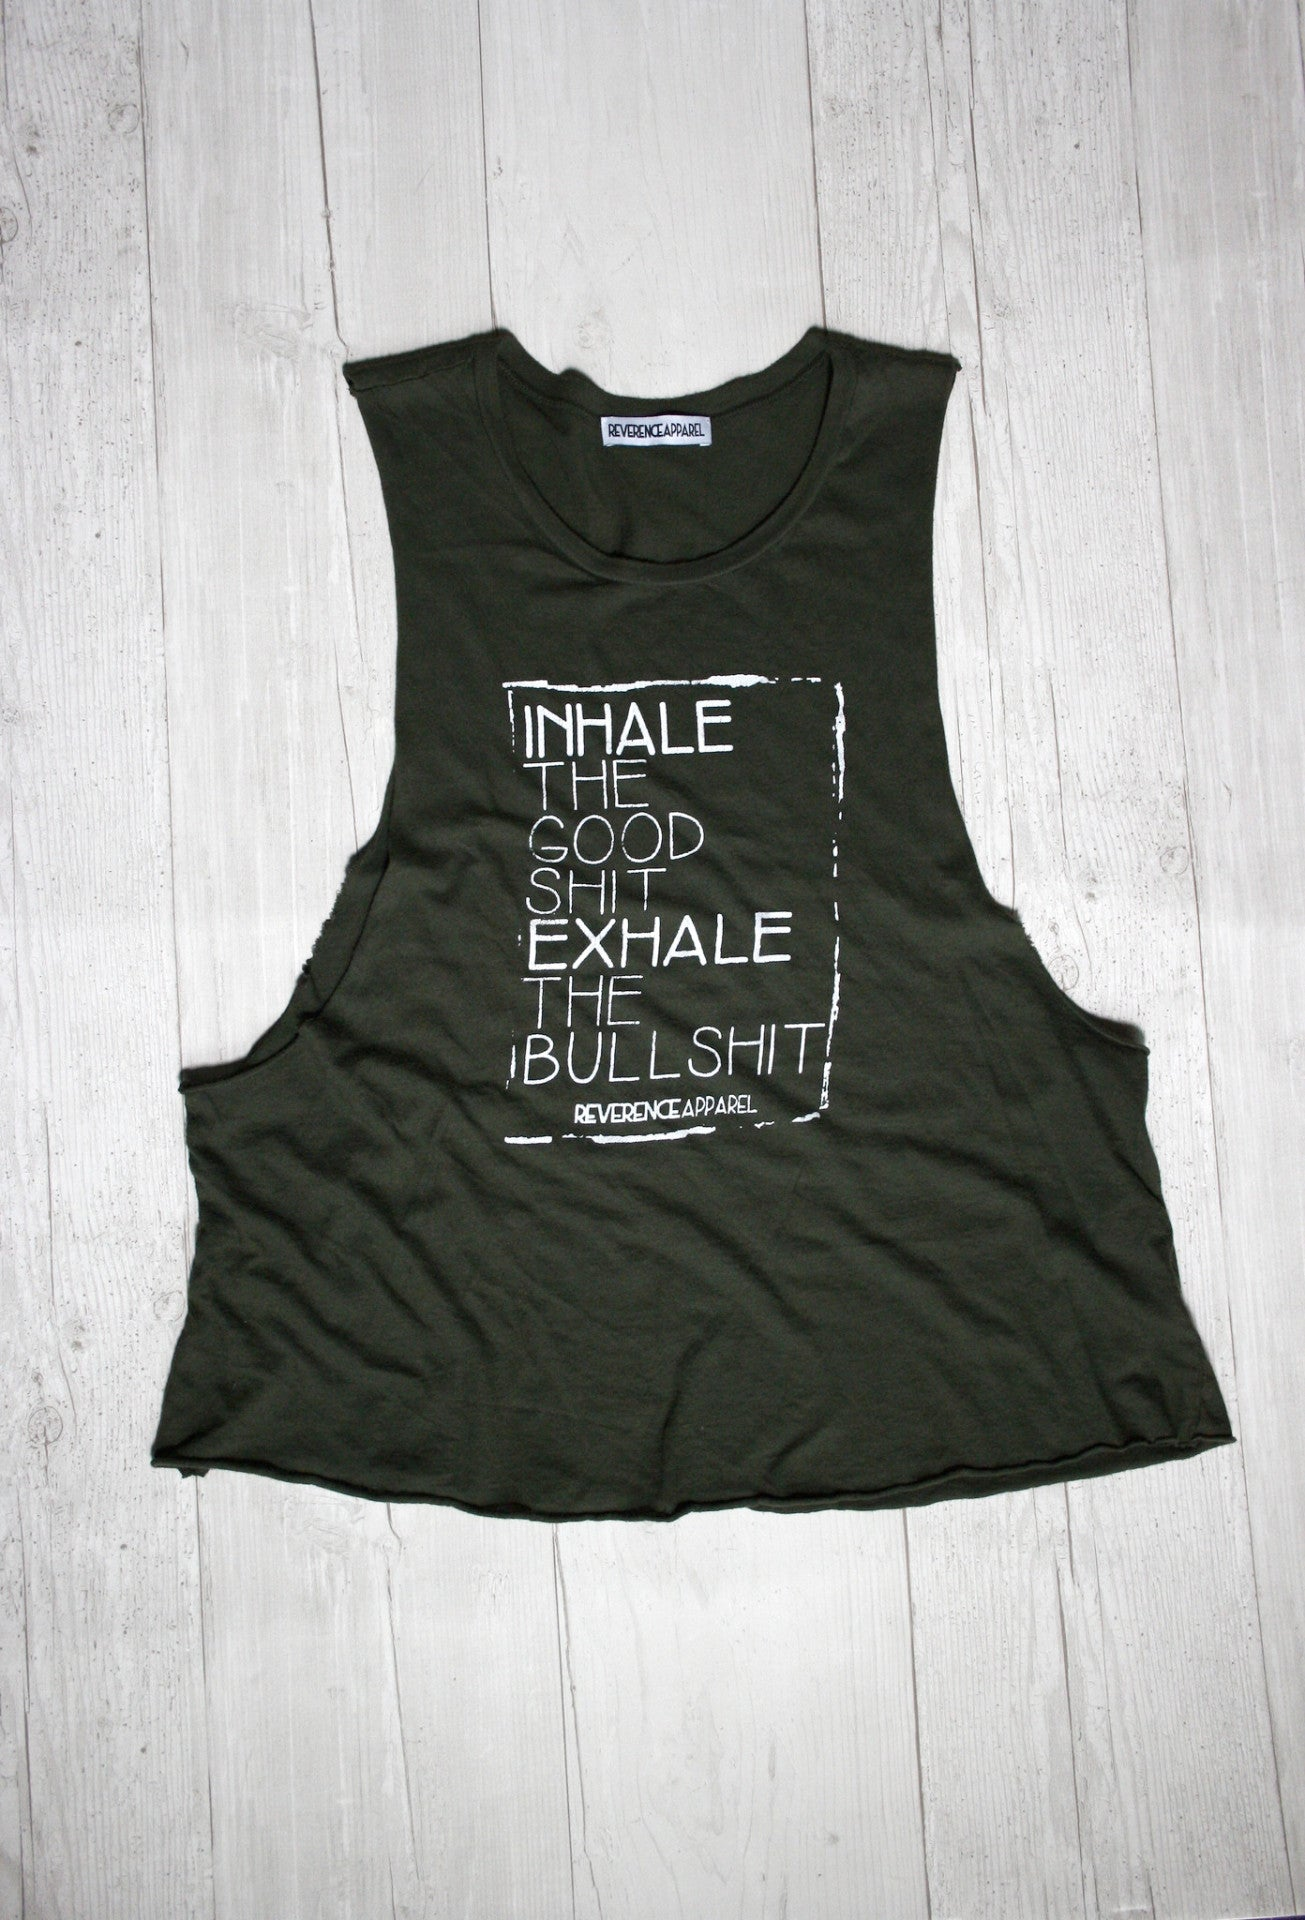 INHALE THE GOOD SHIT EXHALE THE BULLSHIT YOGA TOP REVERENCE APPAREL